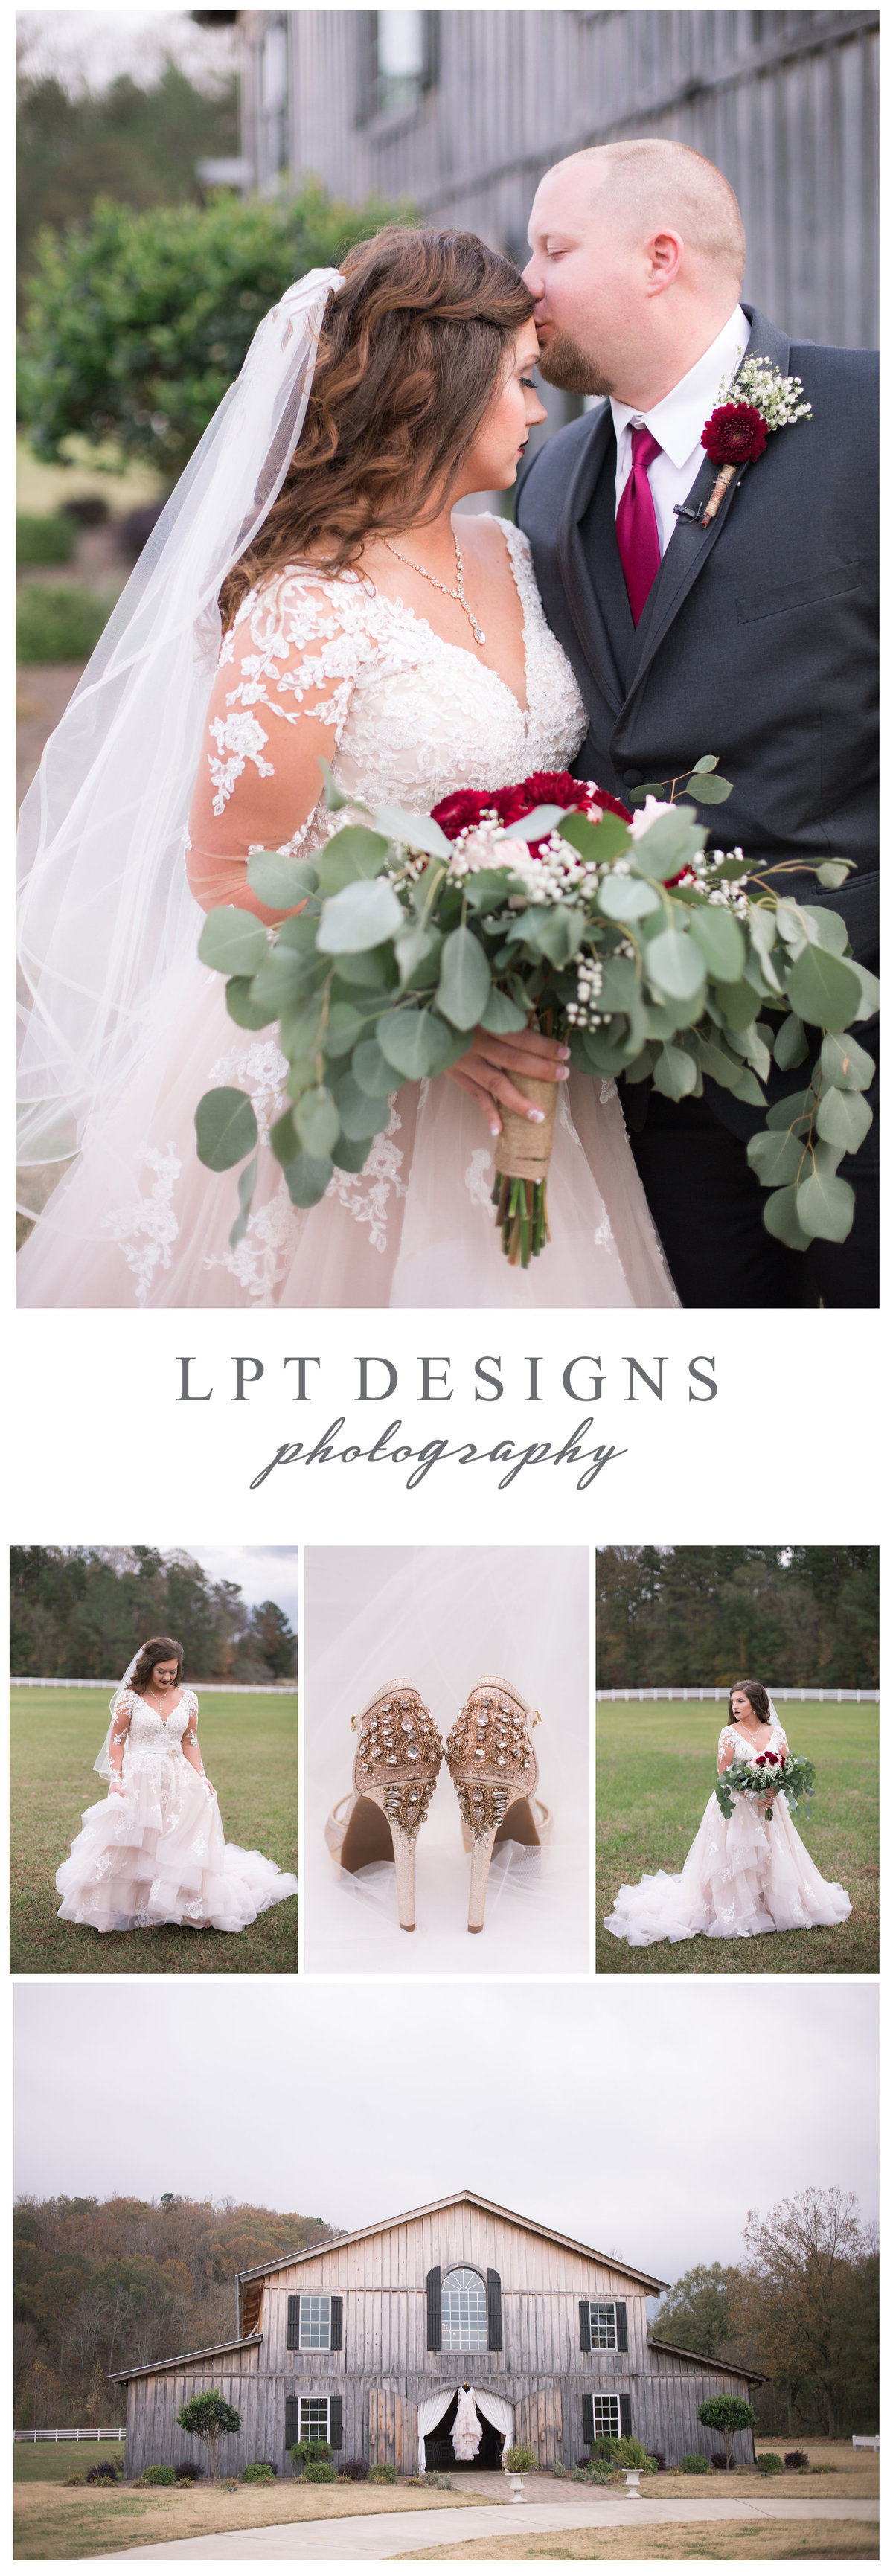 LPT Designs Photography Lydia Thrift Gadsden Alabama Fine Art Wedding Photographer HJ 1